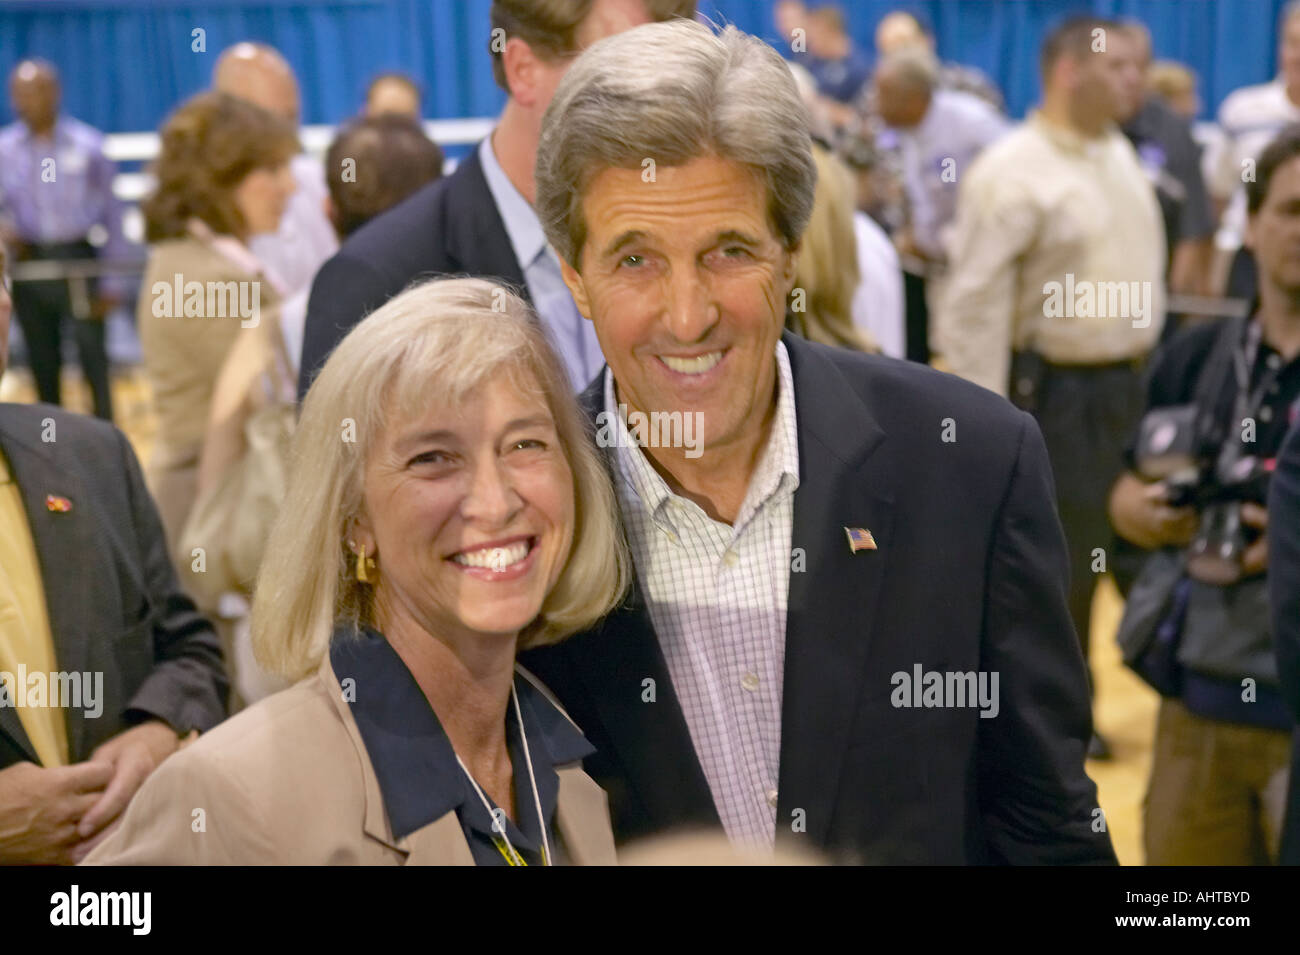 Senator John Kerry posing with attendee at the Valley View Rec Center Henderson NV Stock Photo